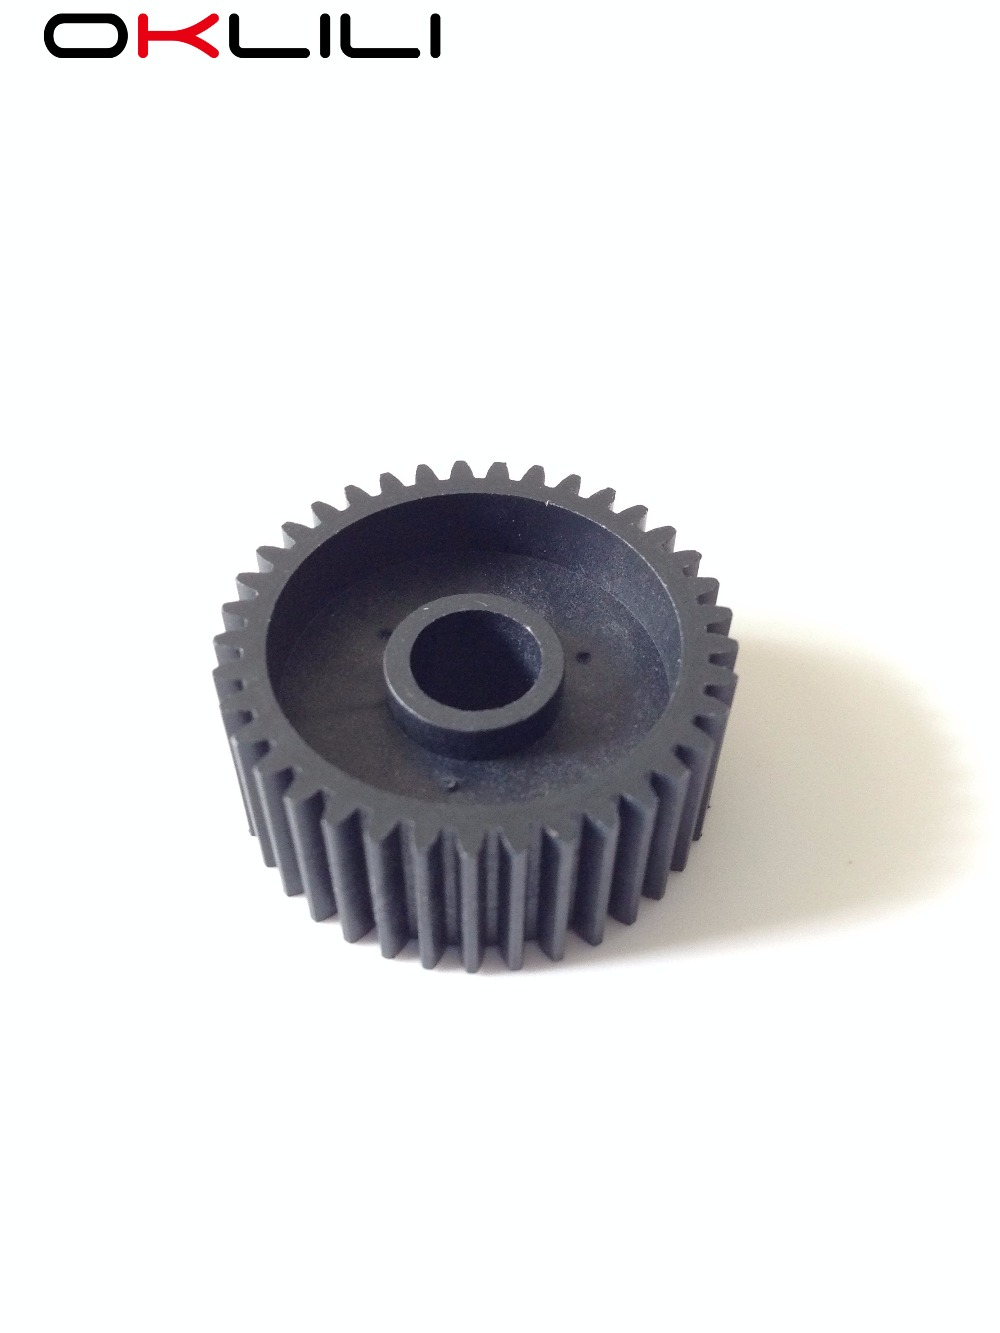 10X JC66-01637A Outer Fuser Drive Gear for Samsung ML2850 ML2851 ML2855 SCX4824 SCX4825 SCX4826 SCX4828 for Xerox 3250 3210 3220